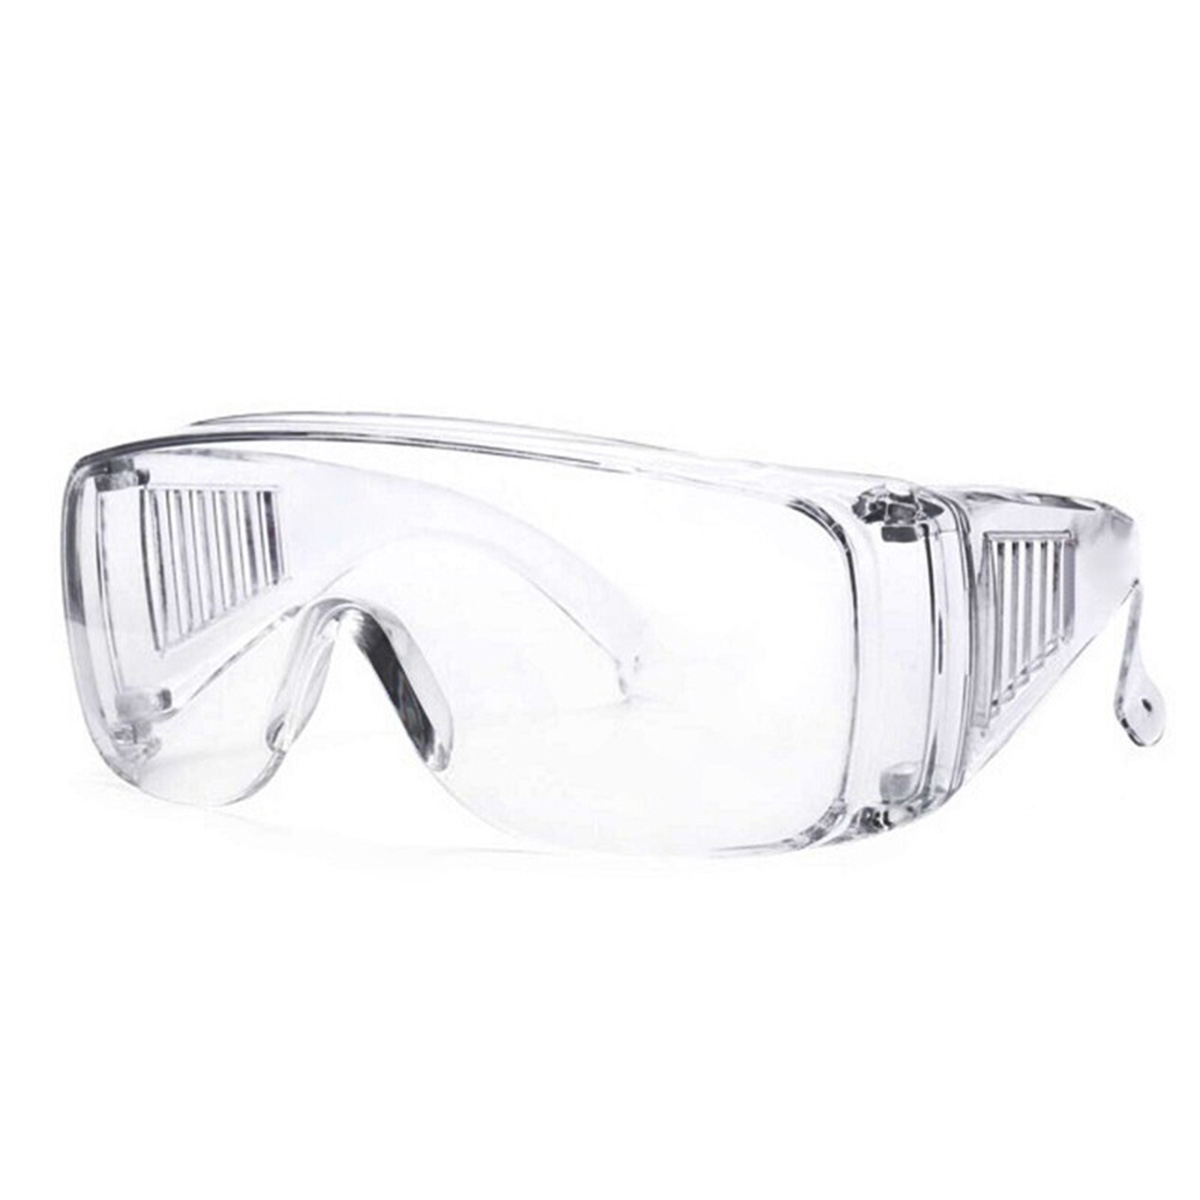 Goggles Transparent Lens Nose Cover-spray Cover-impact Protective Glasses Eyewear Nose Cover Protective Glasses